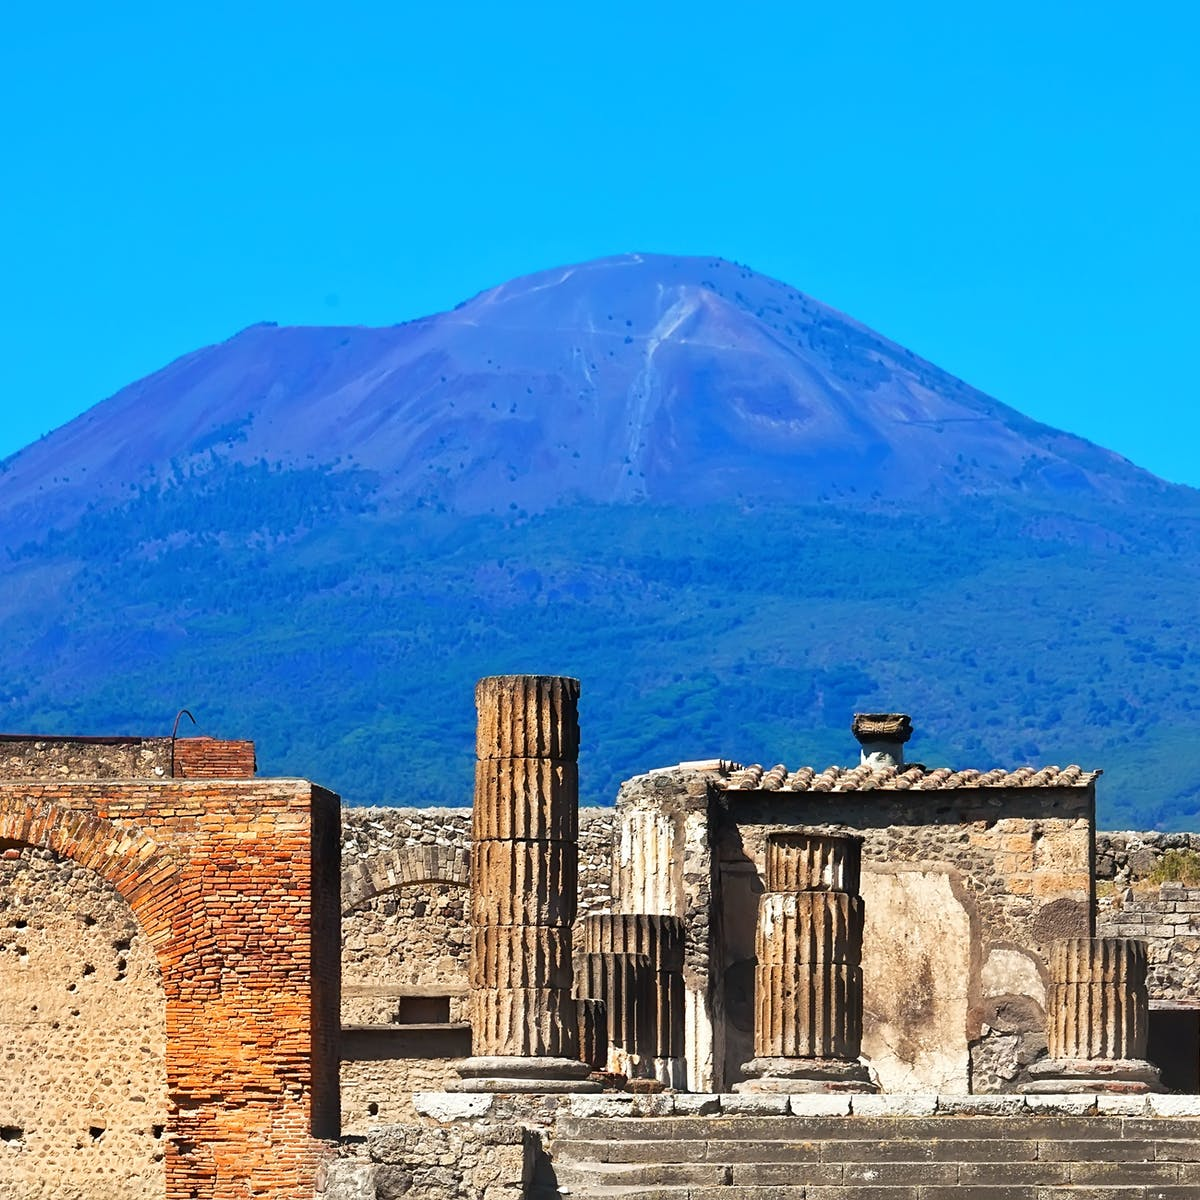 The Pompeii film may not be accurate, but that doesn't mean history suffers